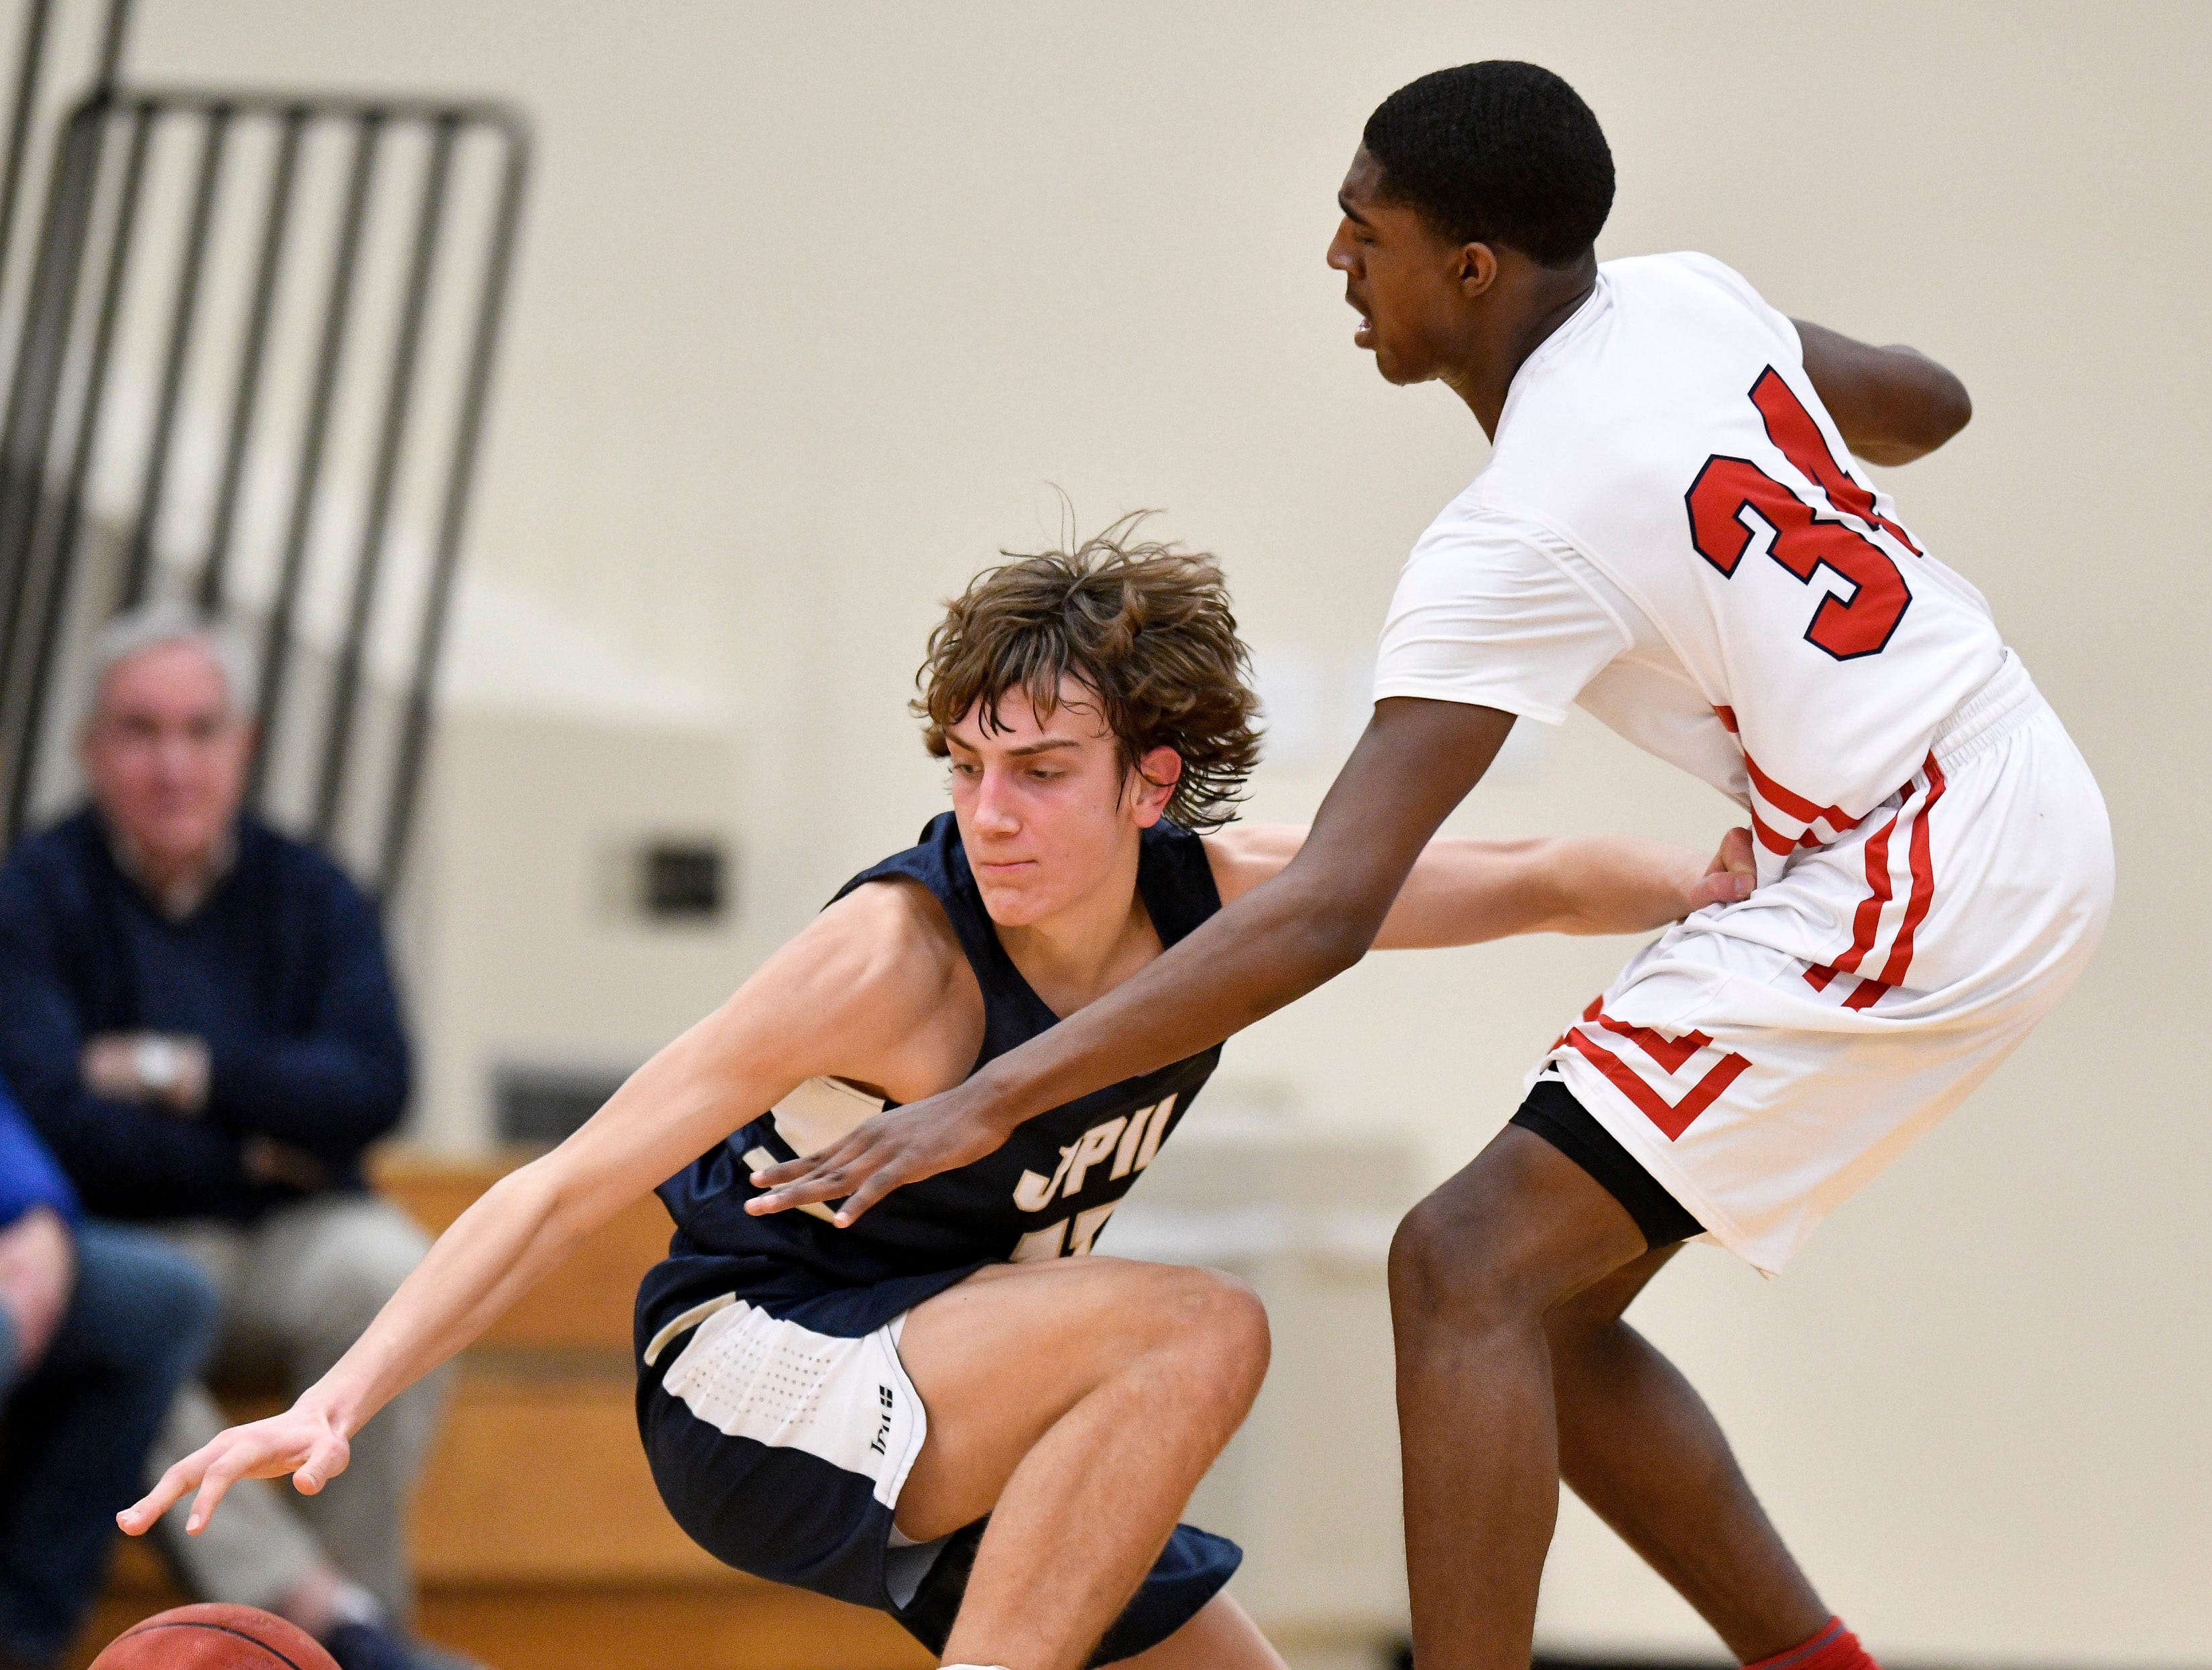 Pope John Paul II's Sam Specht (11) chases a loose ball with Brentwood Academy's Randy Brady (34) during the second half at Brentwood Academy in Brentwood, Tenn., Friday, Jan. 4, 2019.